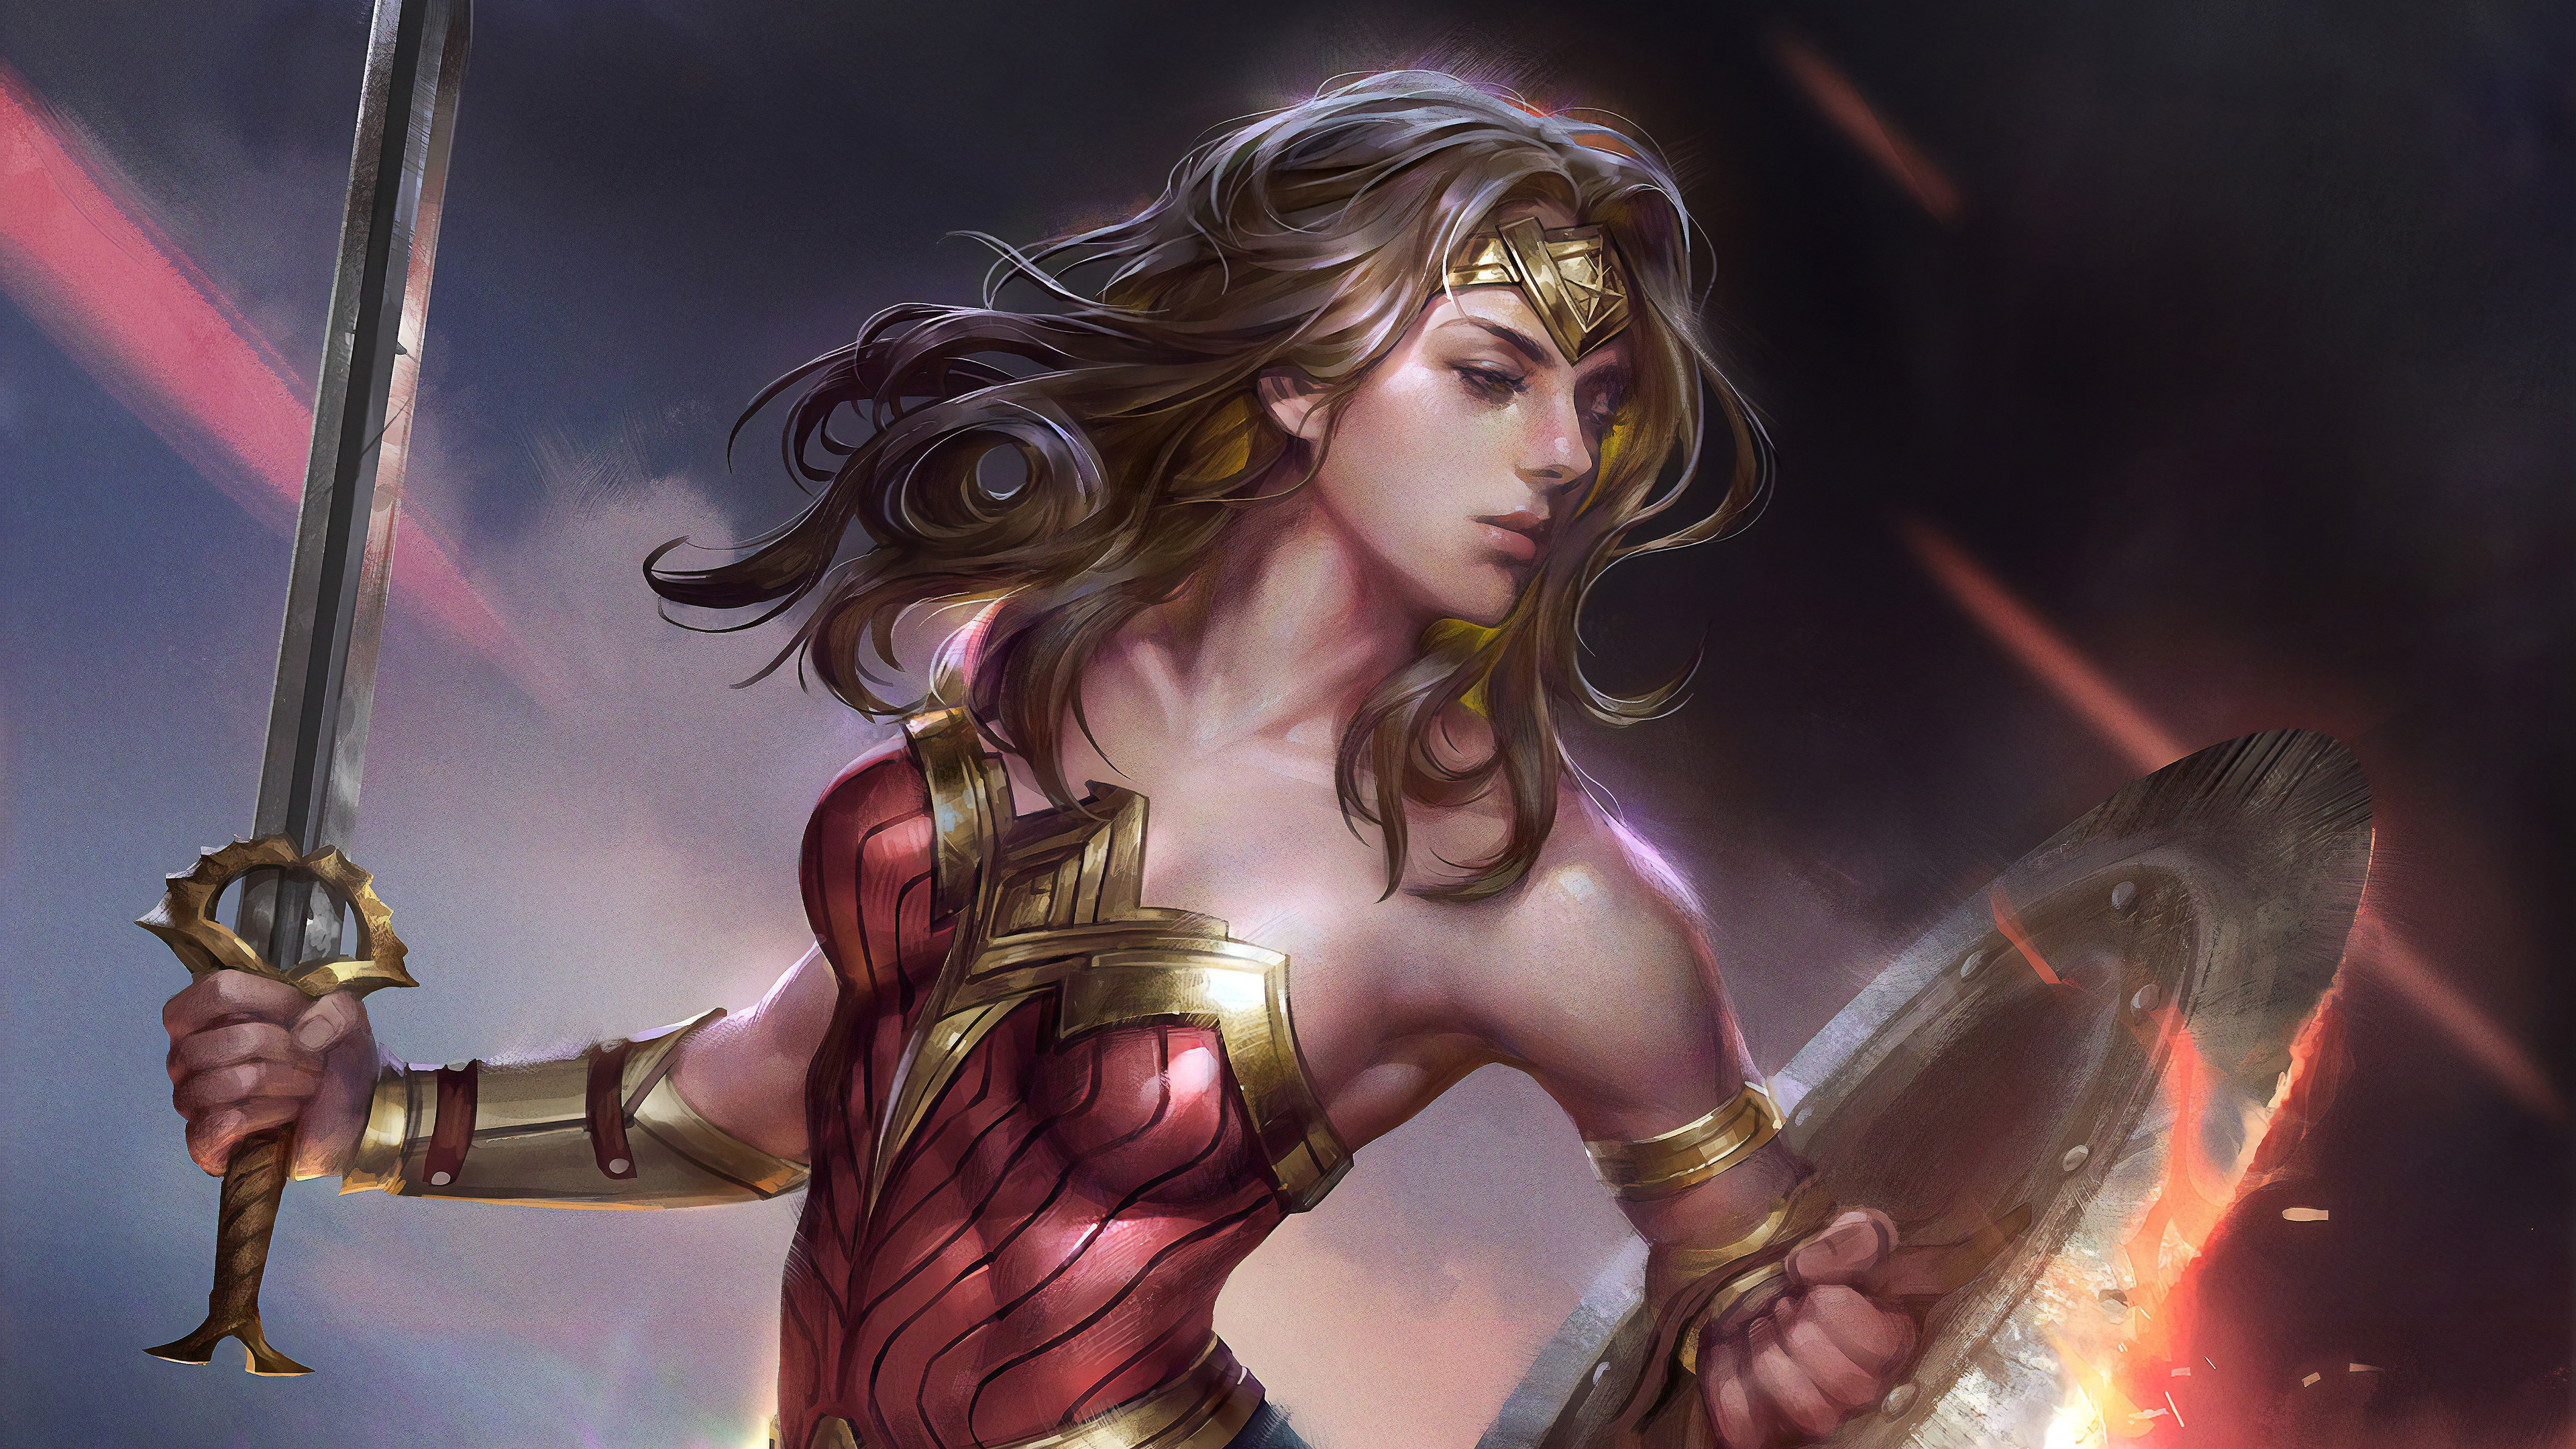 4k artwonder woman 1560533460 - 4k ArtWonder Woman - wonder woman wallpapers, superheroes wallpapers, hd-wallpapers, deviantart wallpapers, artwork wallpapers, artist wallpapers, 4k-wallpapers